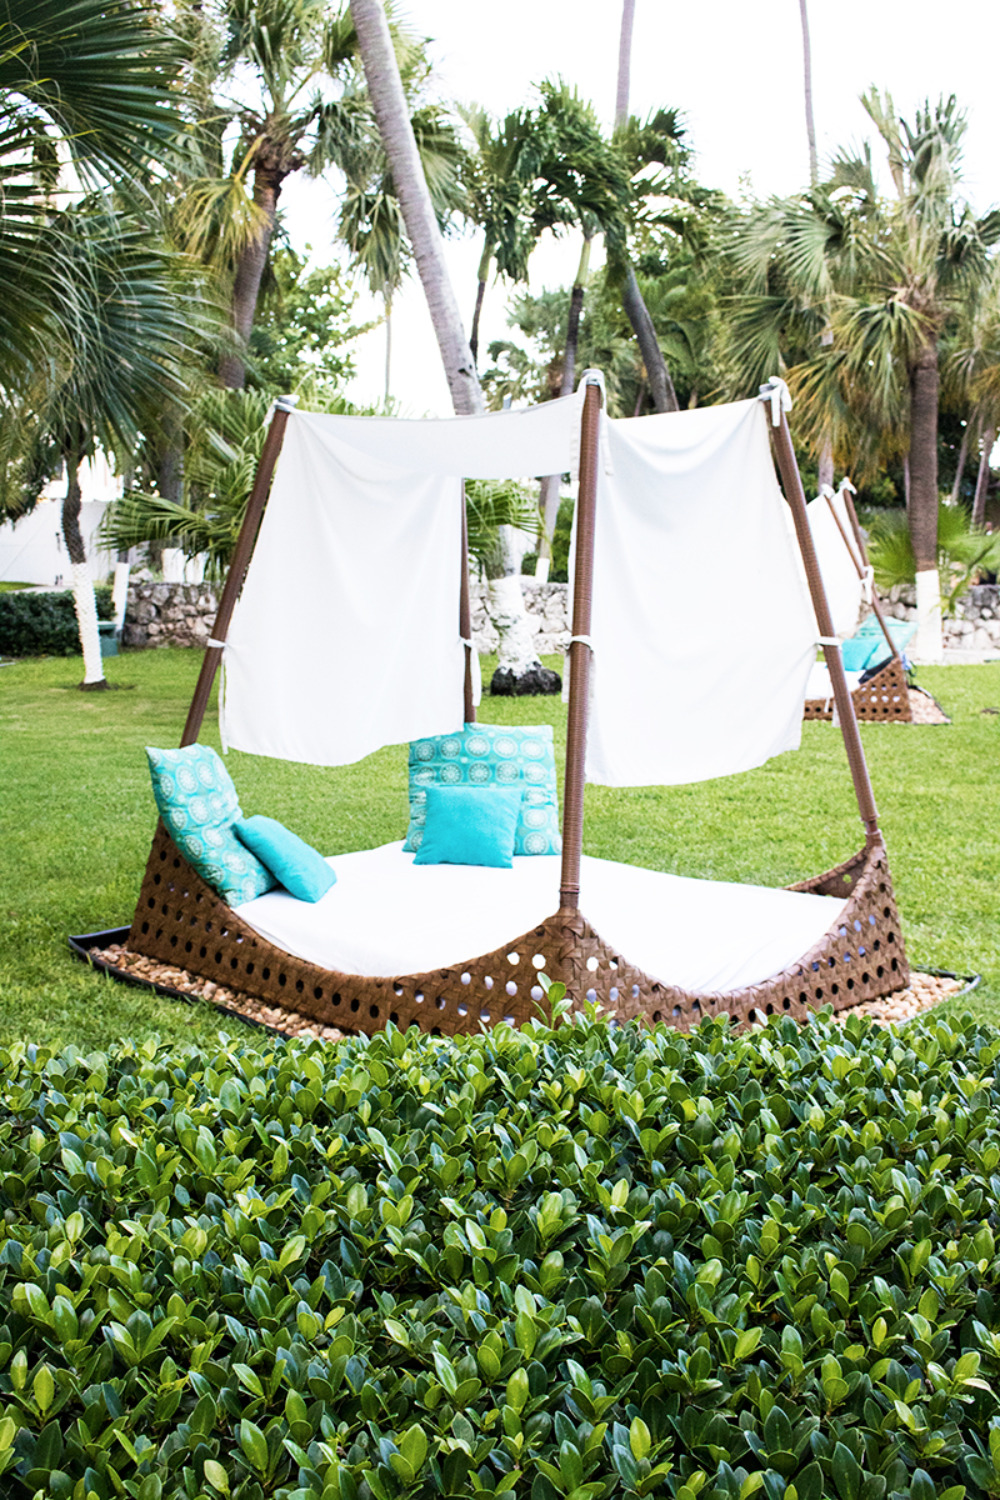 outdoor lounge area at the Hilton in the Bahamas